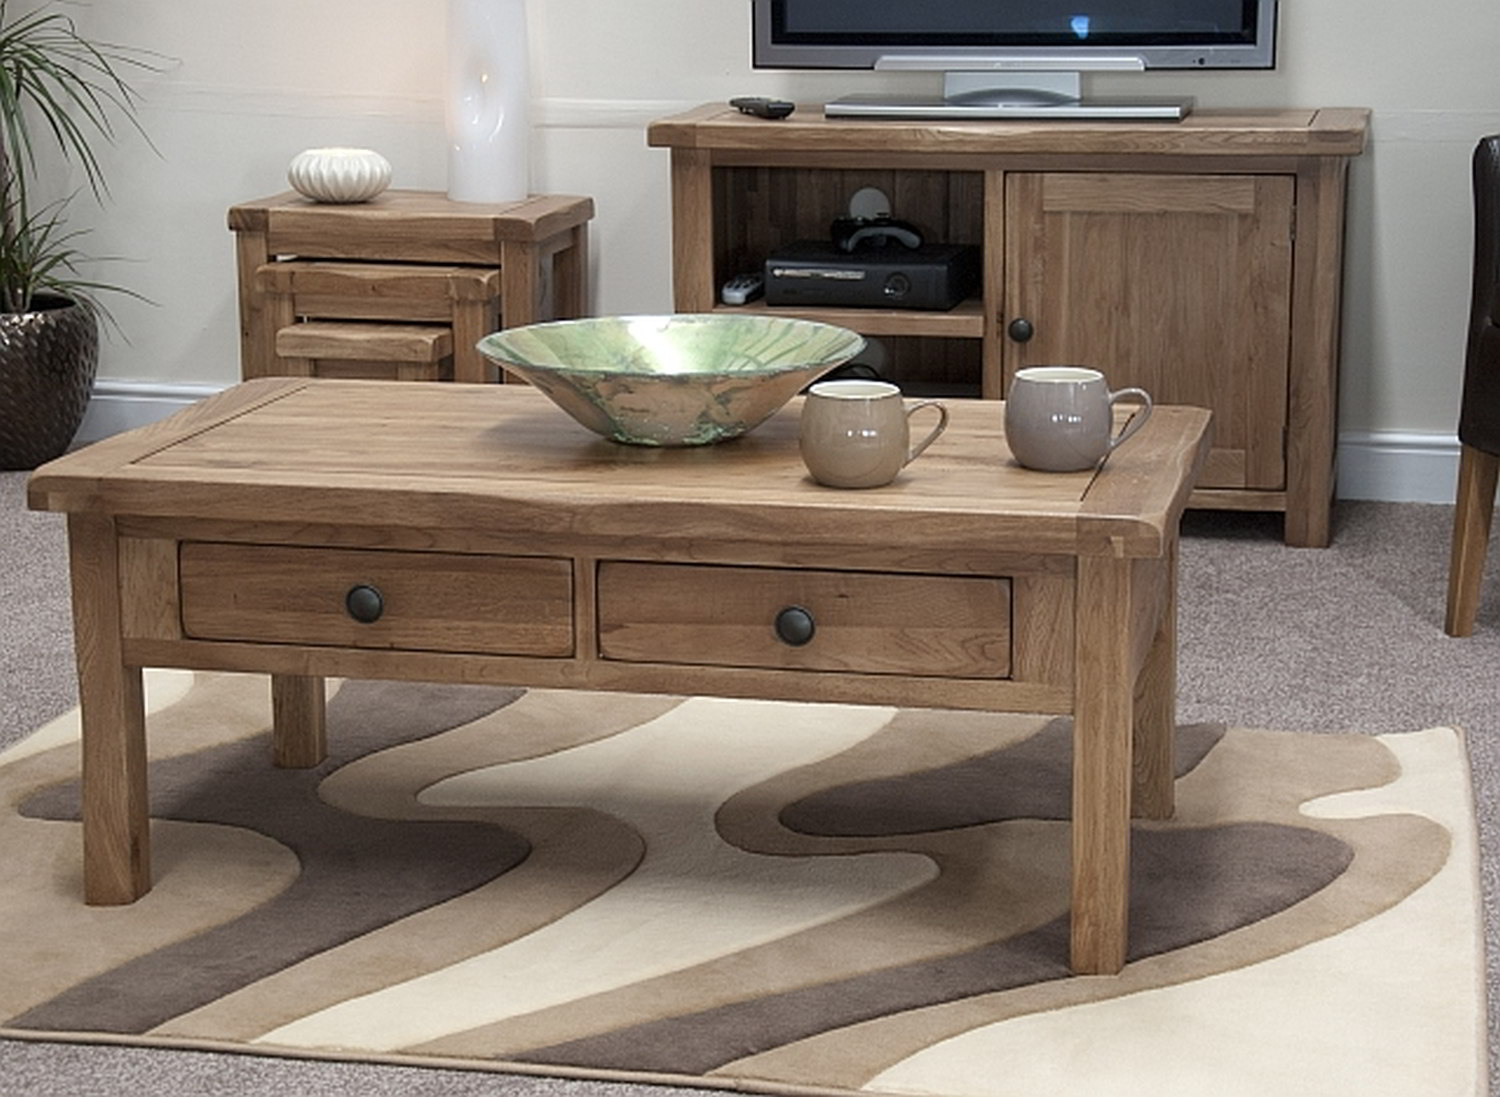 high end coffee tables create interesting look living rustic made solid wood with double drawer underneath some ceramic its top for centerpiece and completed rug under the table